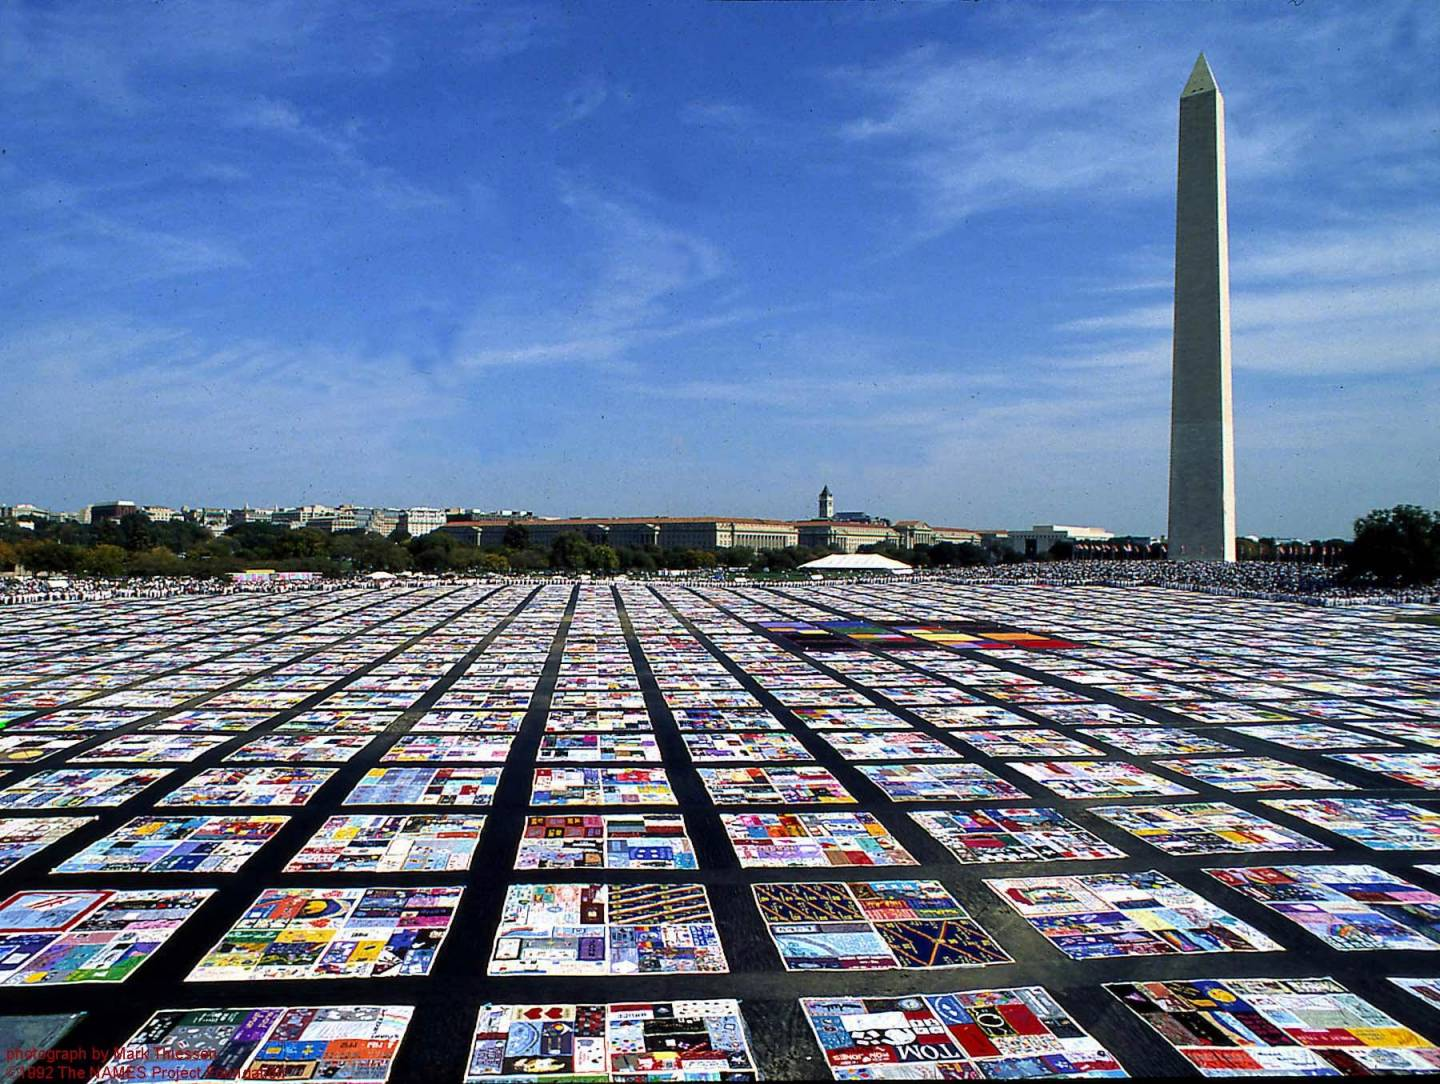 Display of AIDS quilts stretching out towards the horizon with Washington Monument in the background